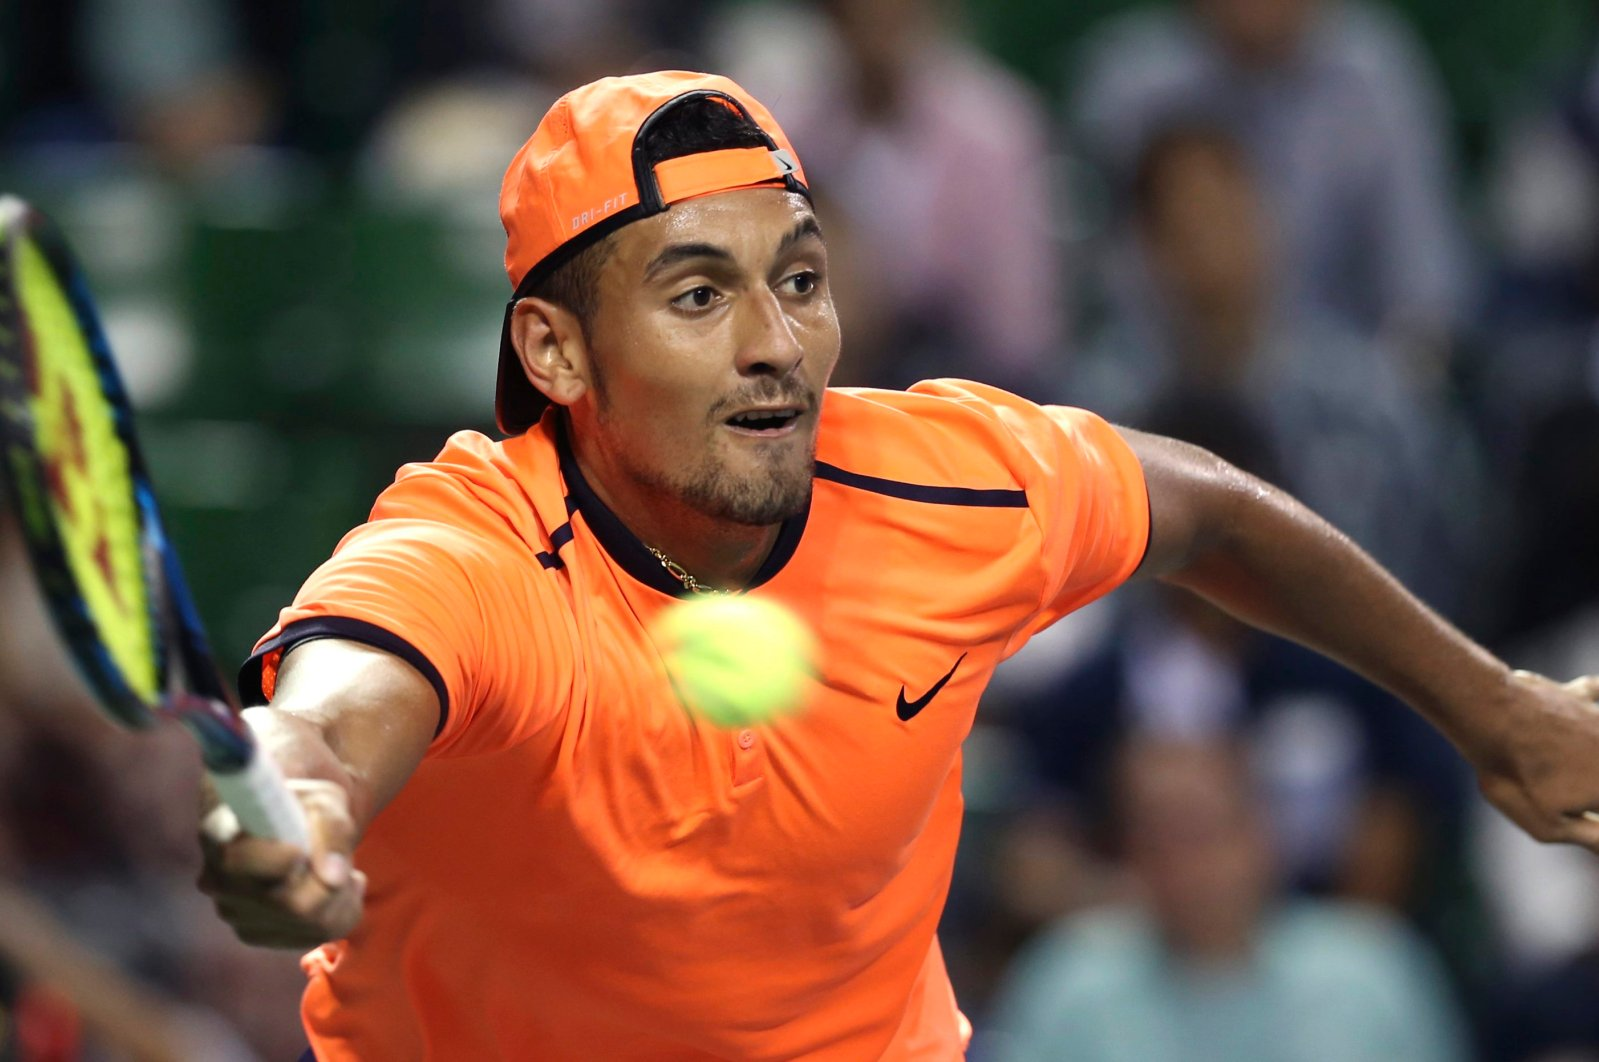 Nick Kyrgios returns a shot to Gael Monfils during the Japan Open, Oct. 8, 2016. (AP Photo)